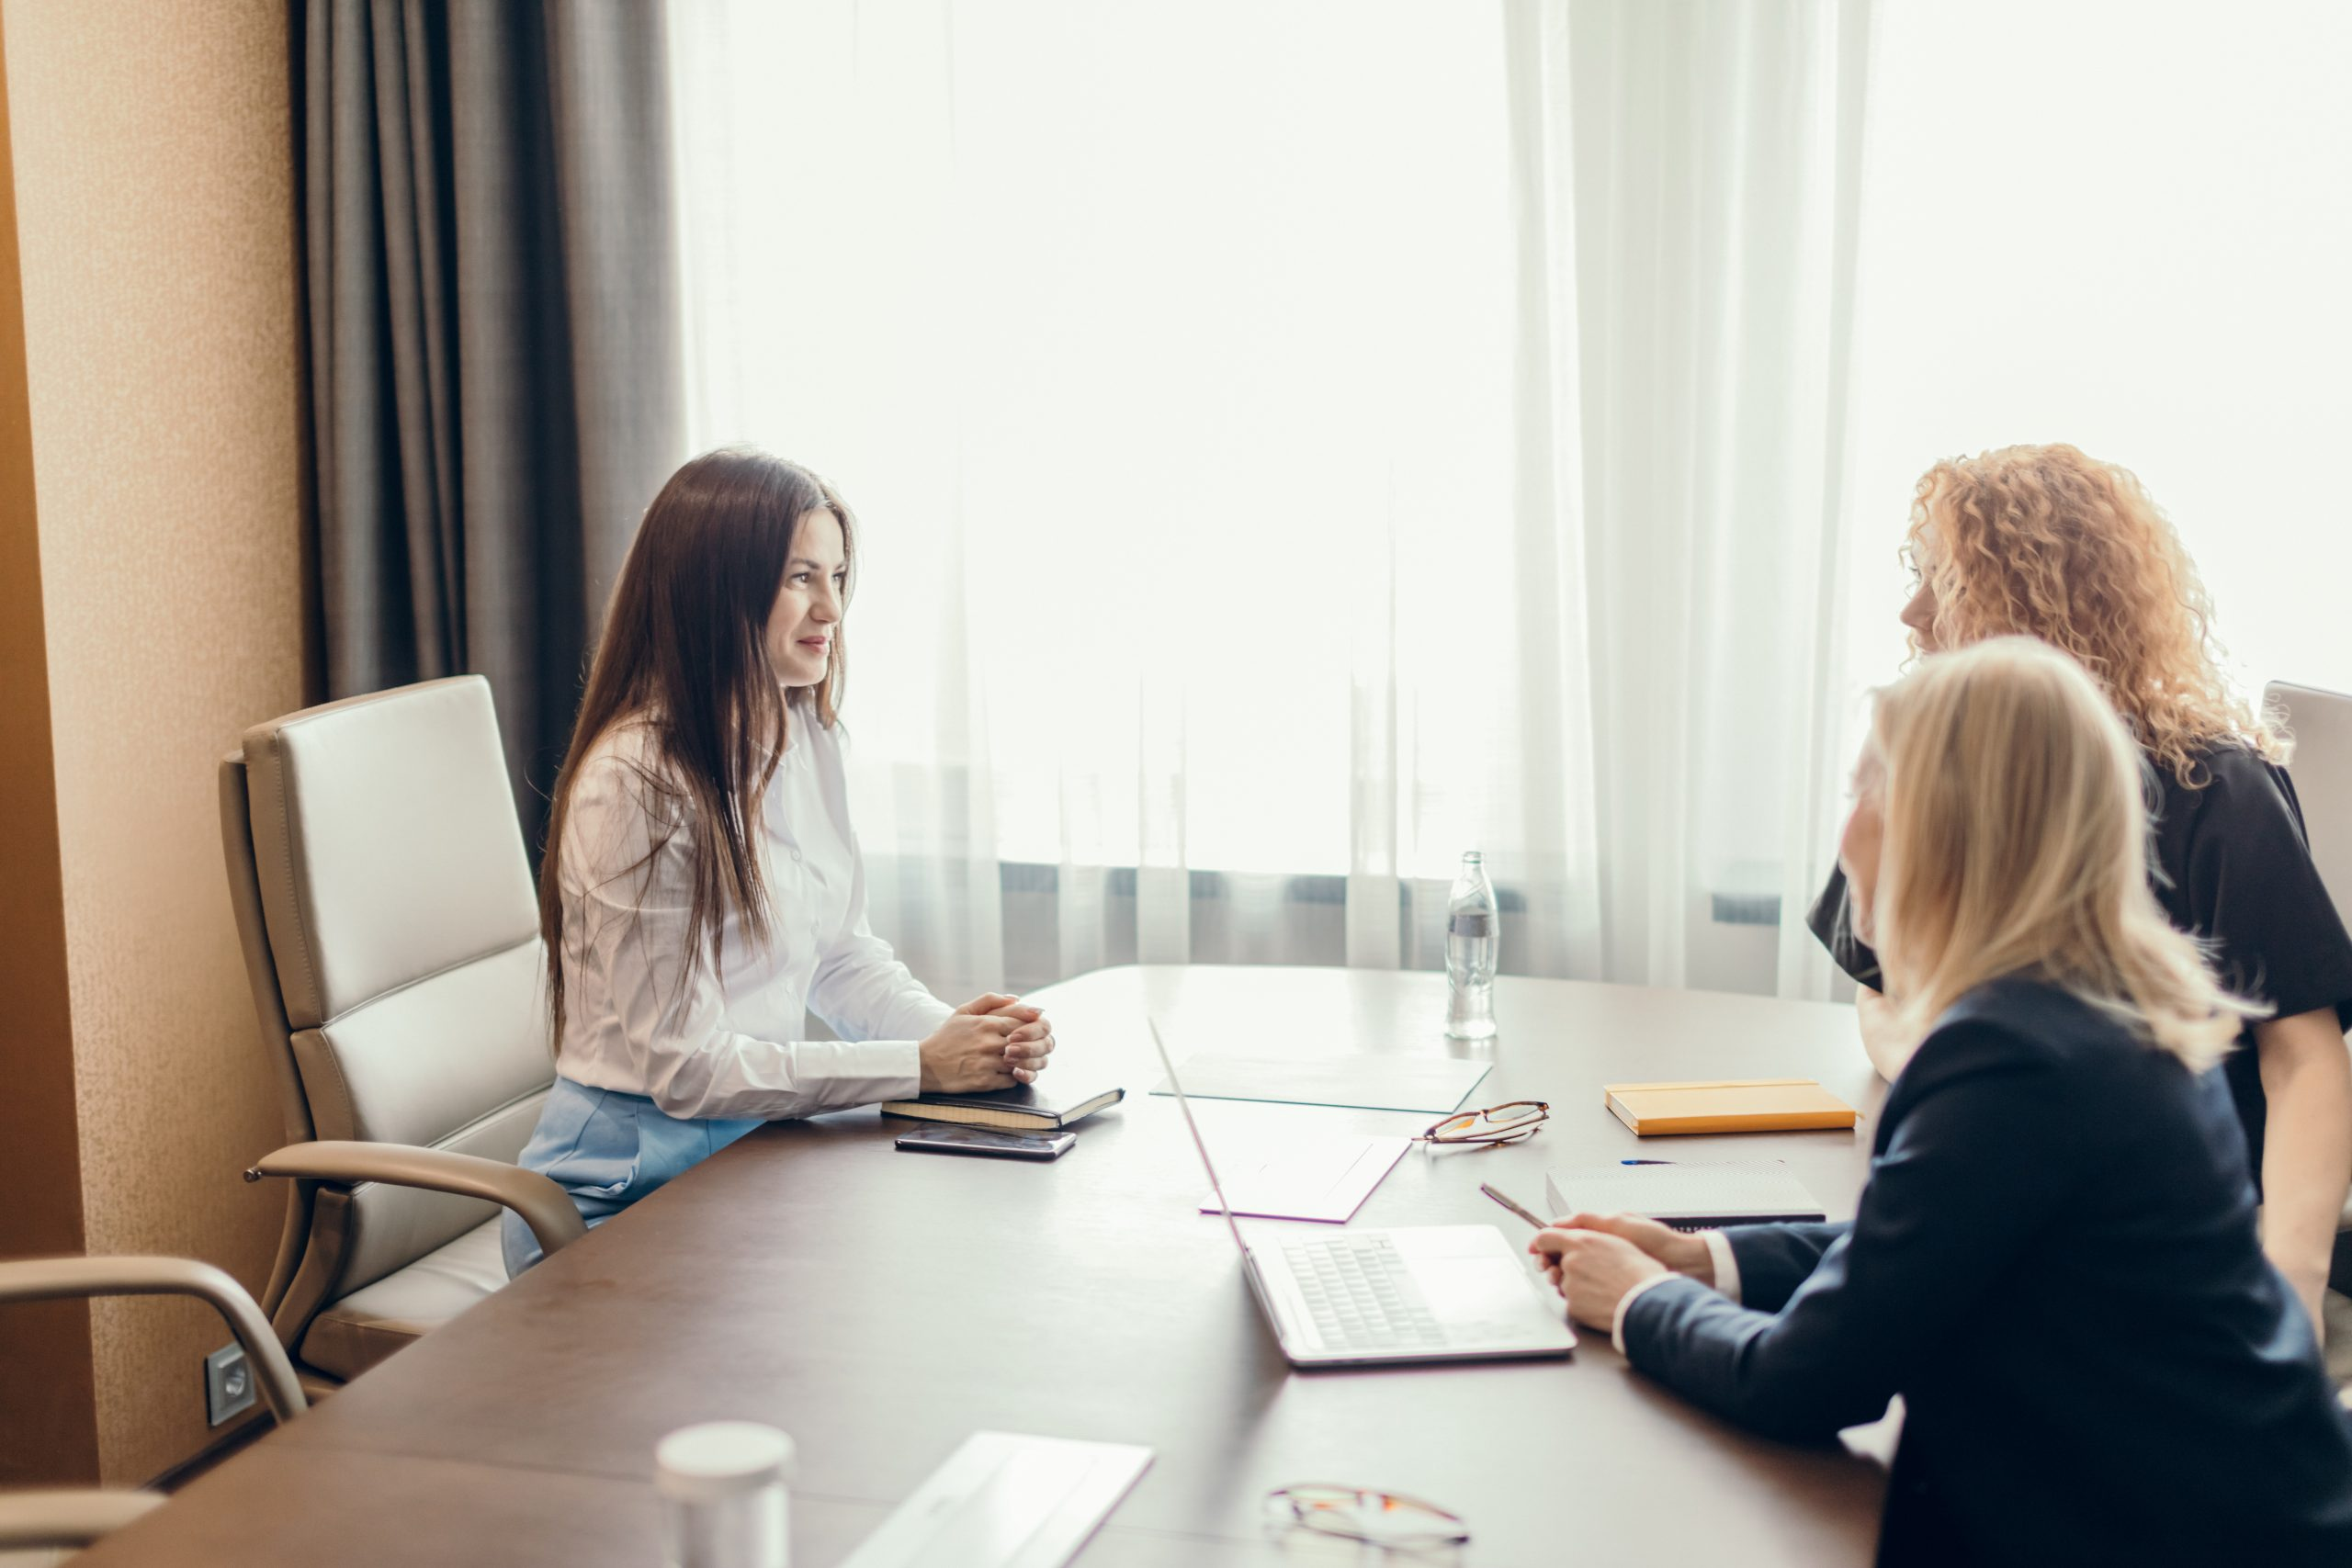 Top 10 Questions Candidates Can Ask During an Interview